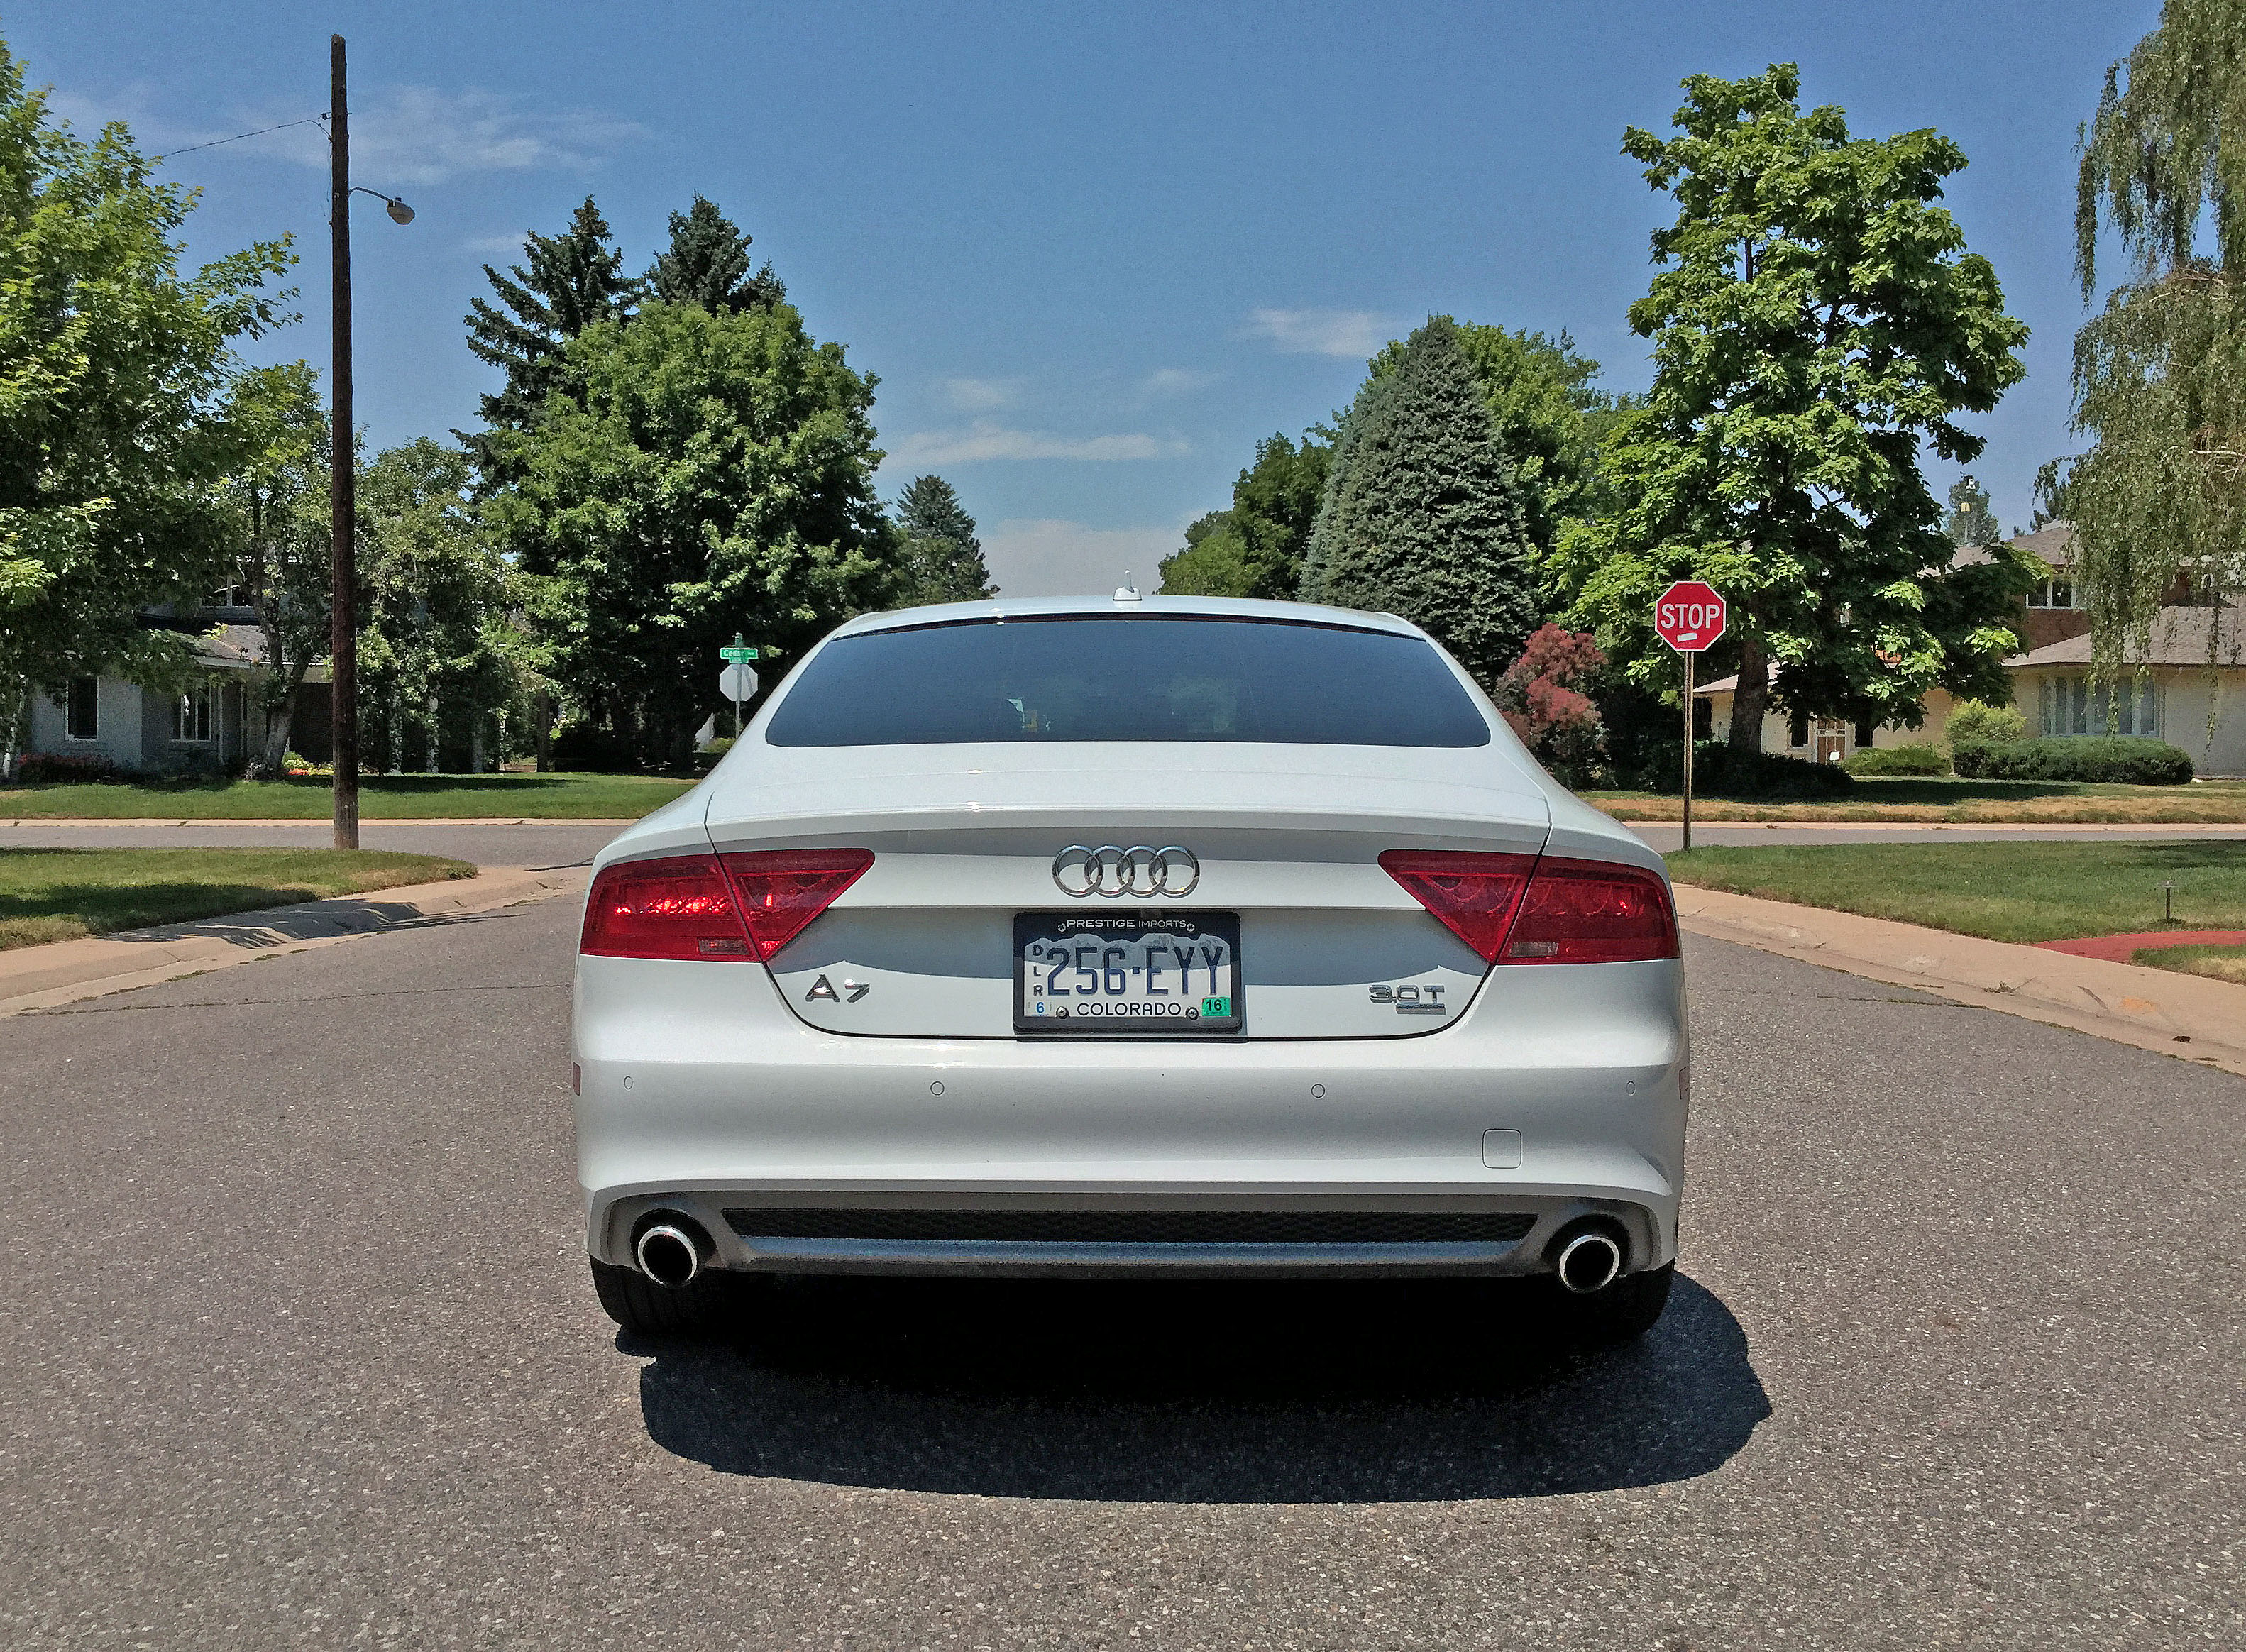 Denver s Hilltop Neighborhood and the Audi A7